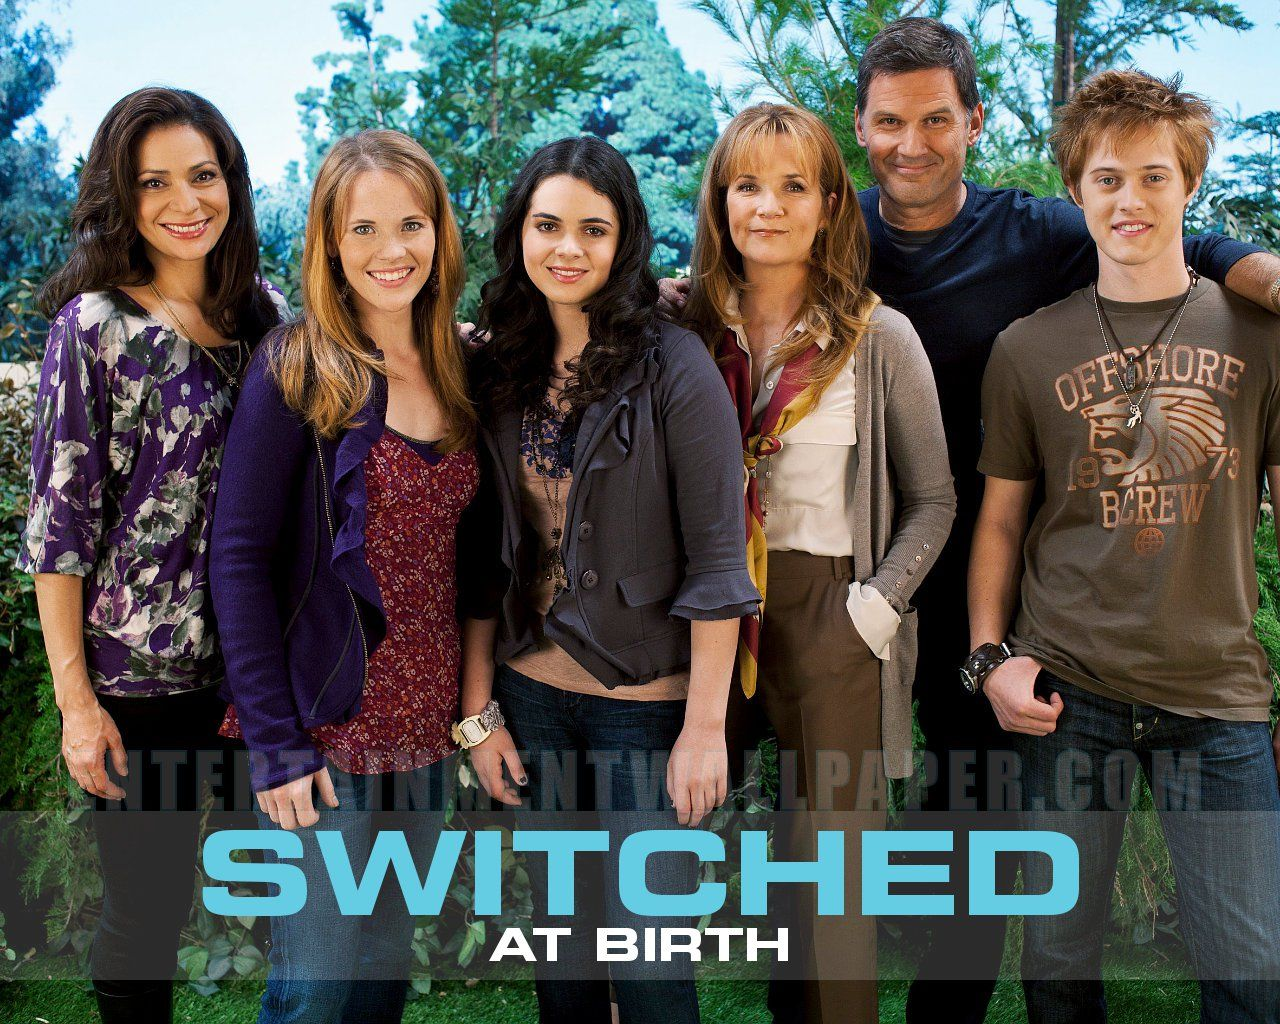 Switched at Birth Switched at birth, Lucas grabeel, Switch